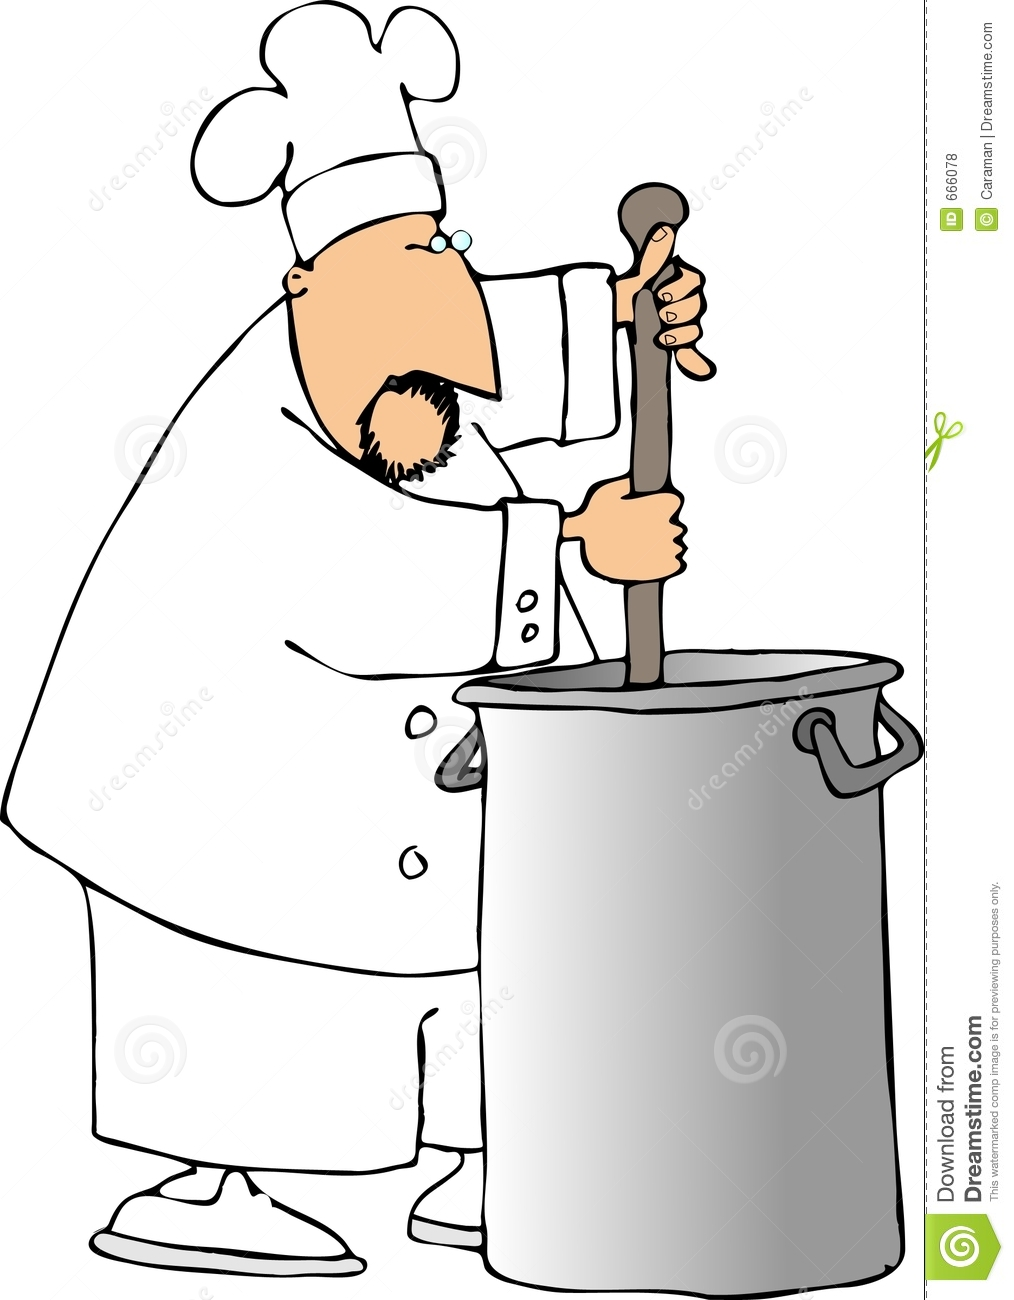 Stir The Pot Royalty Free Stock Photos - Image: 666078